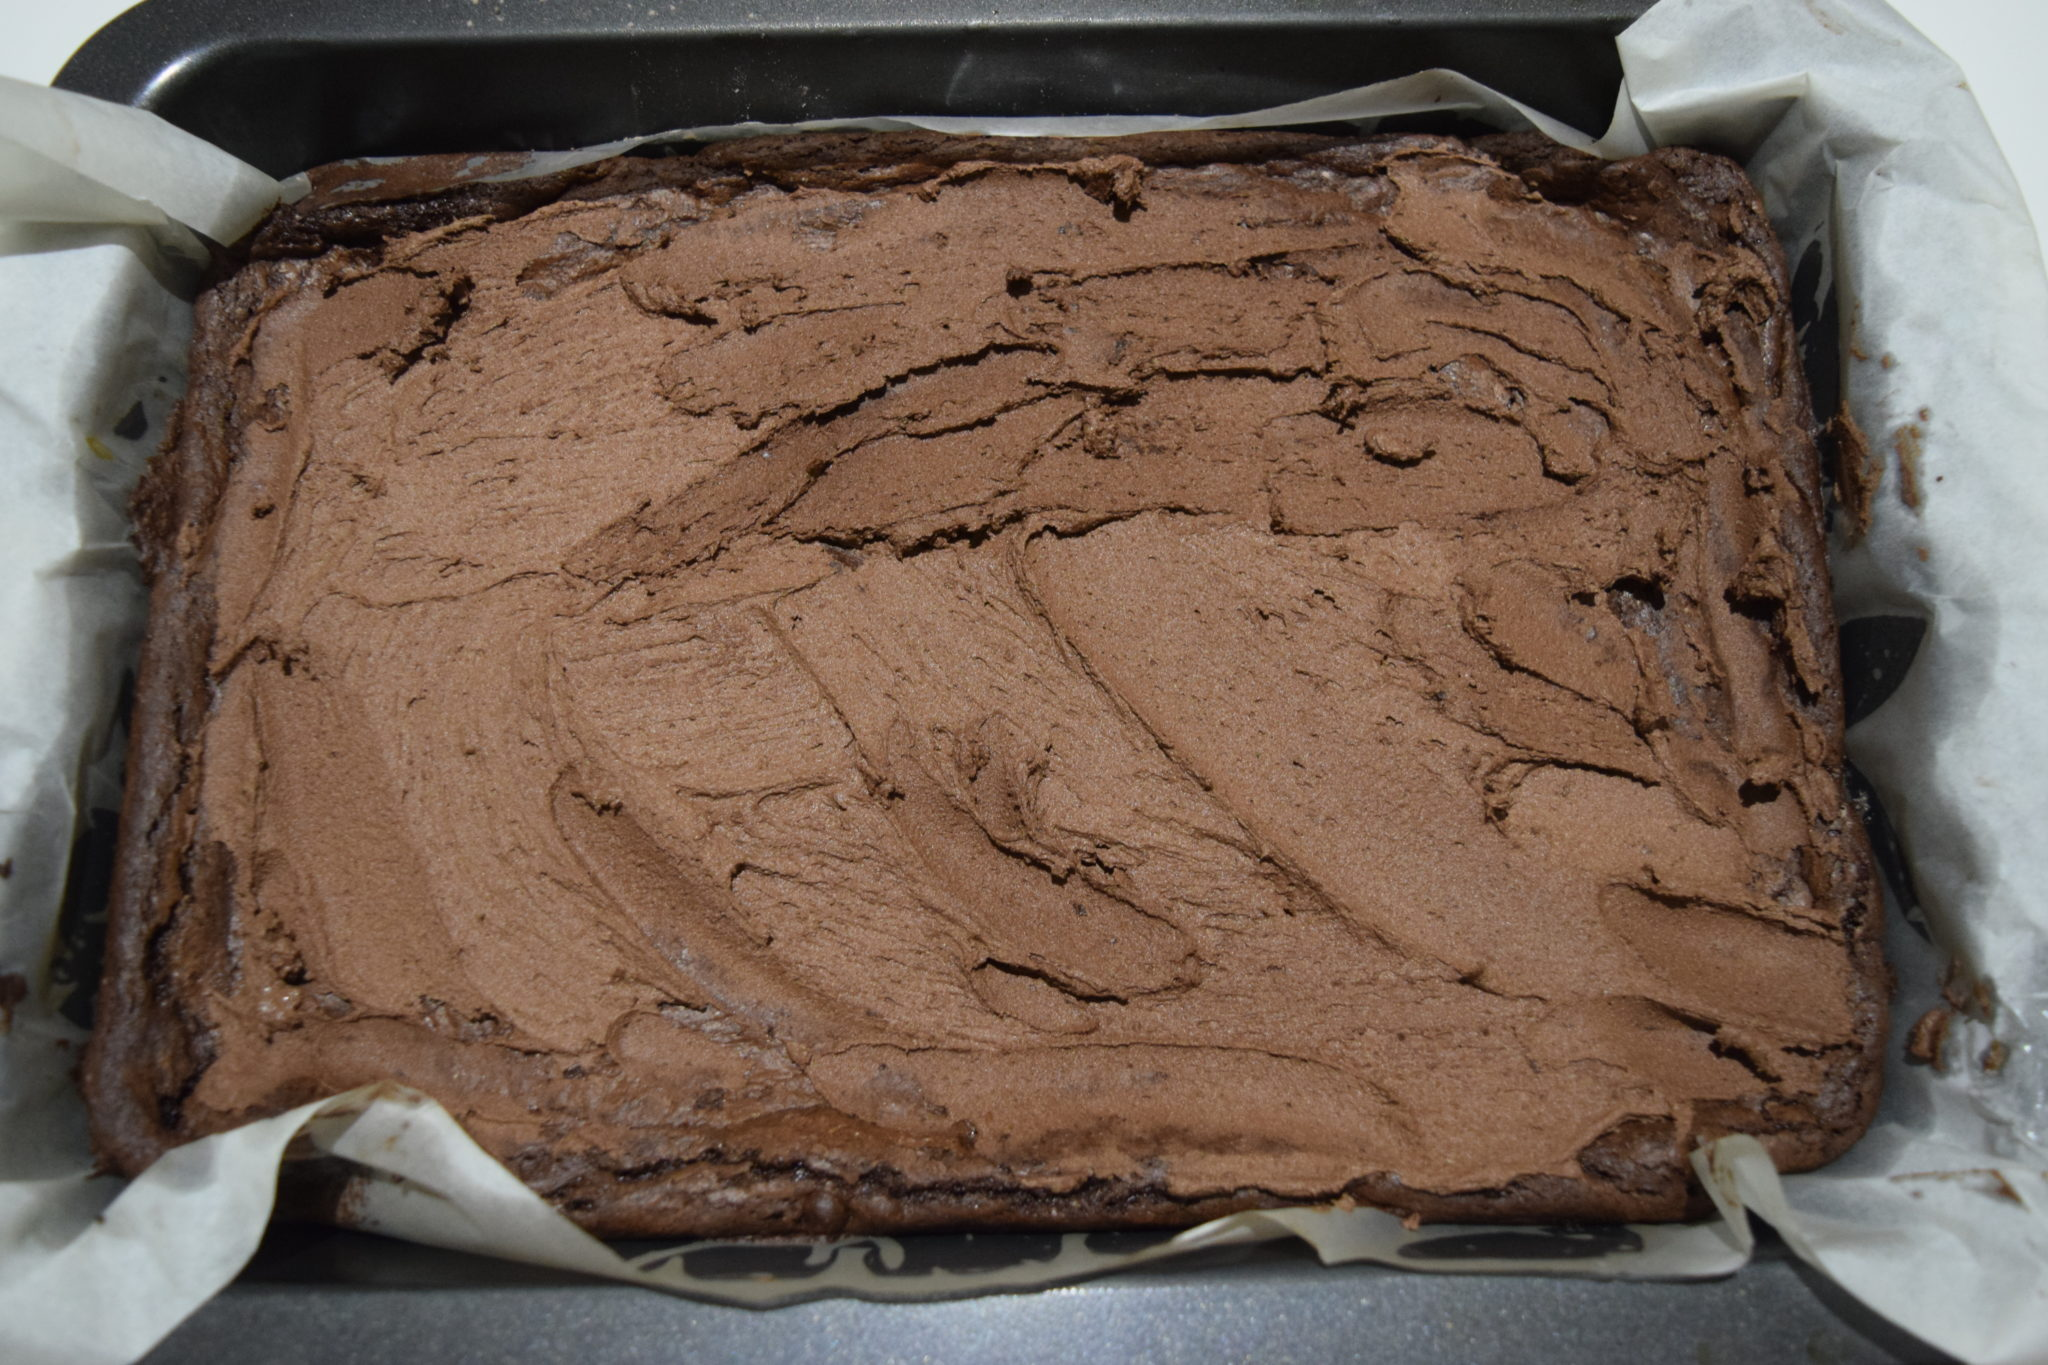 Fresh from the oven: Gluten-Free Brownies